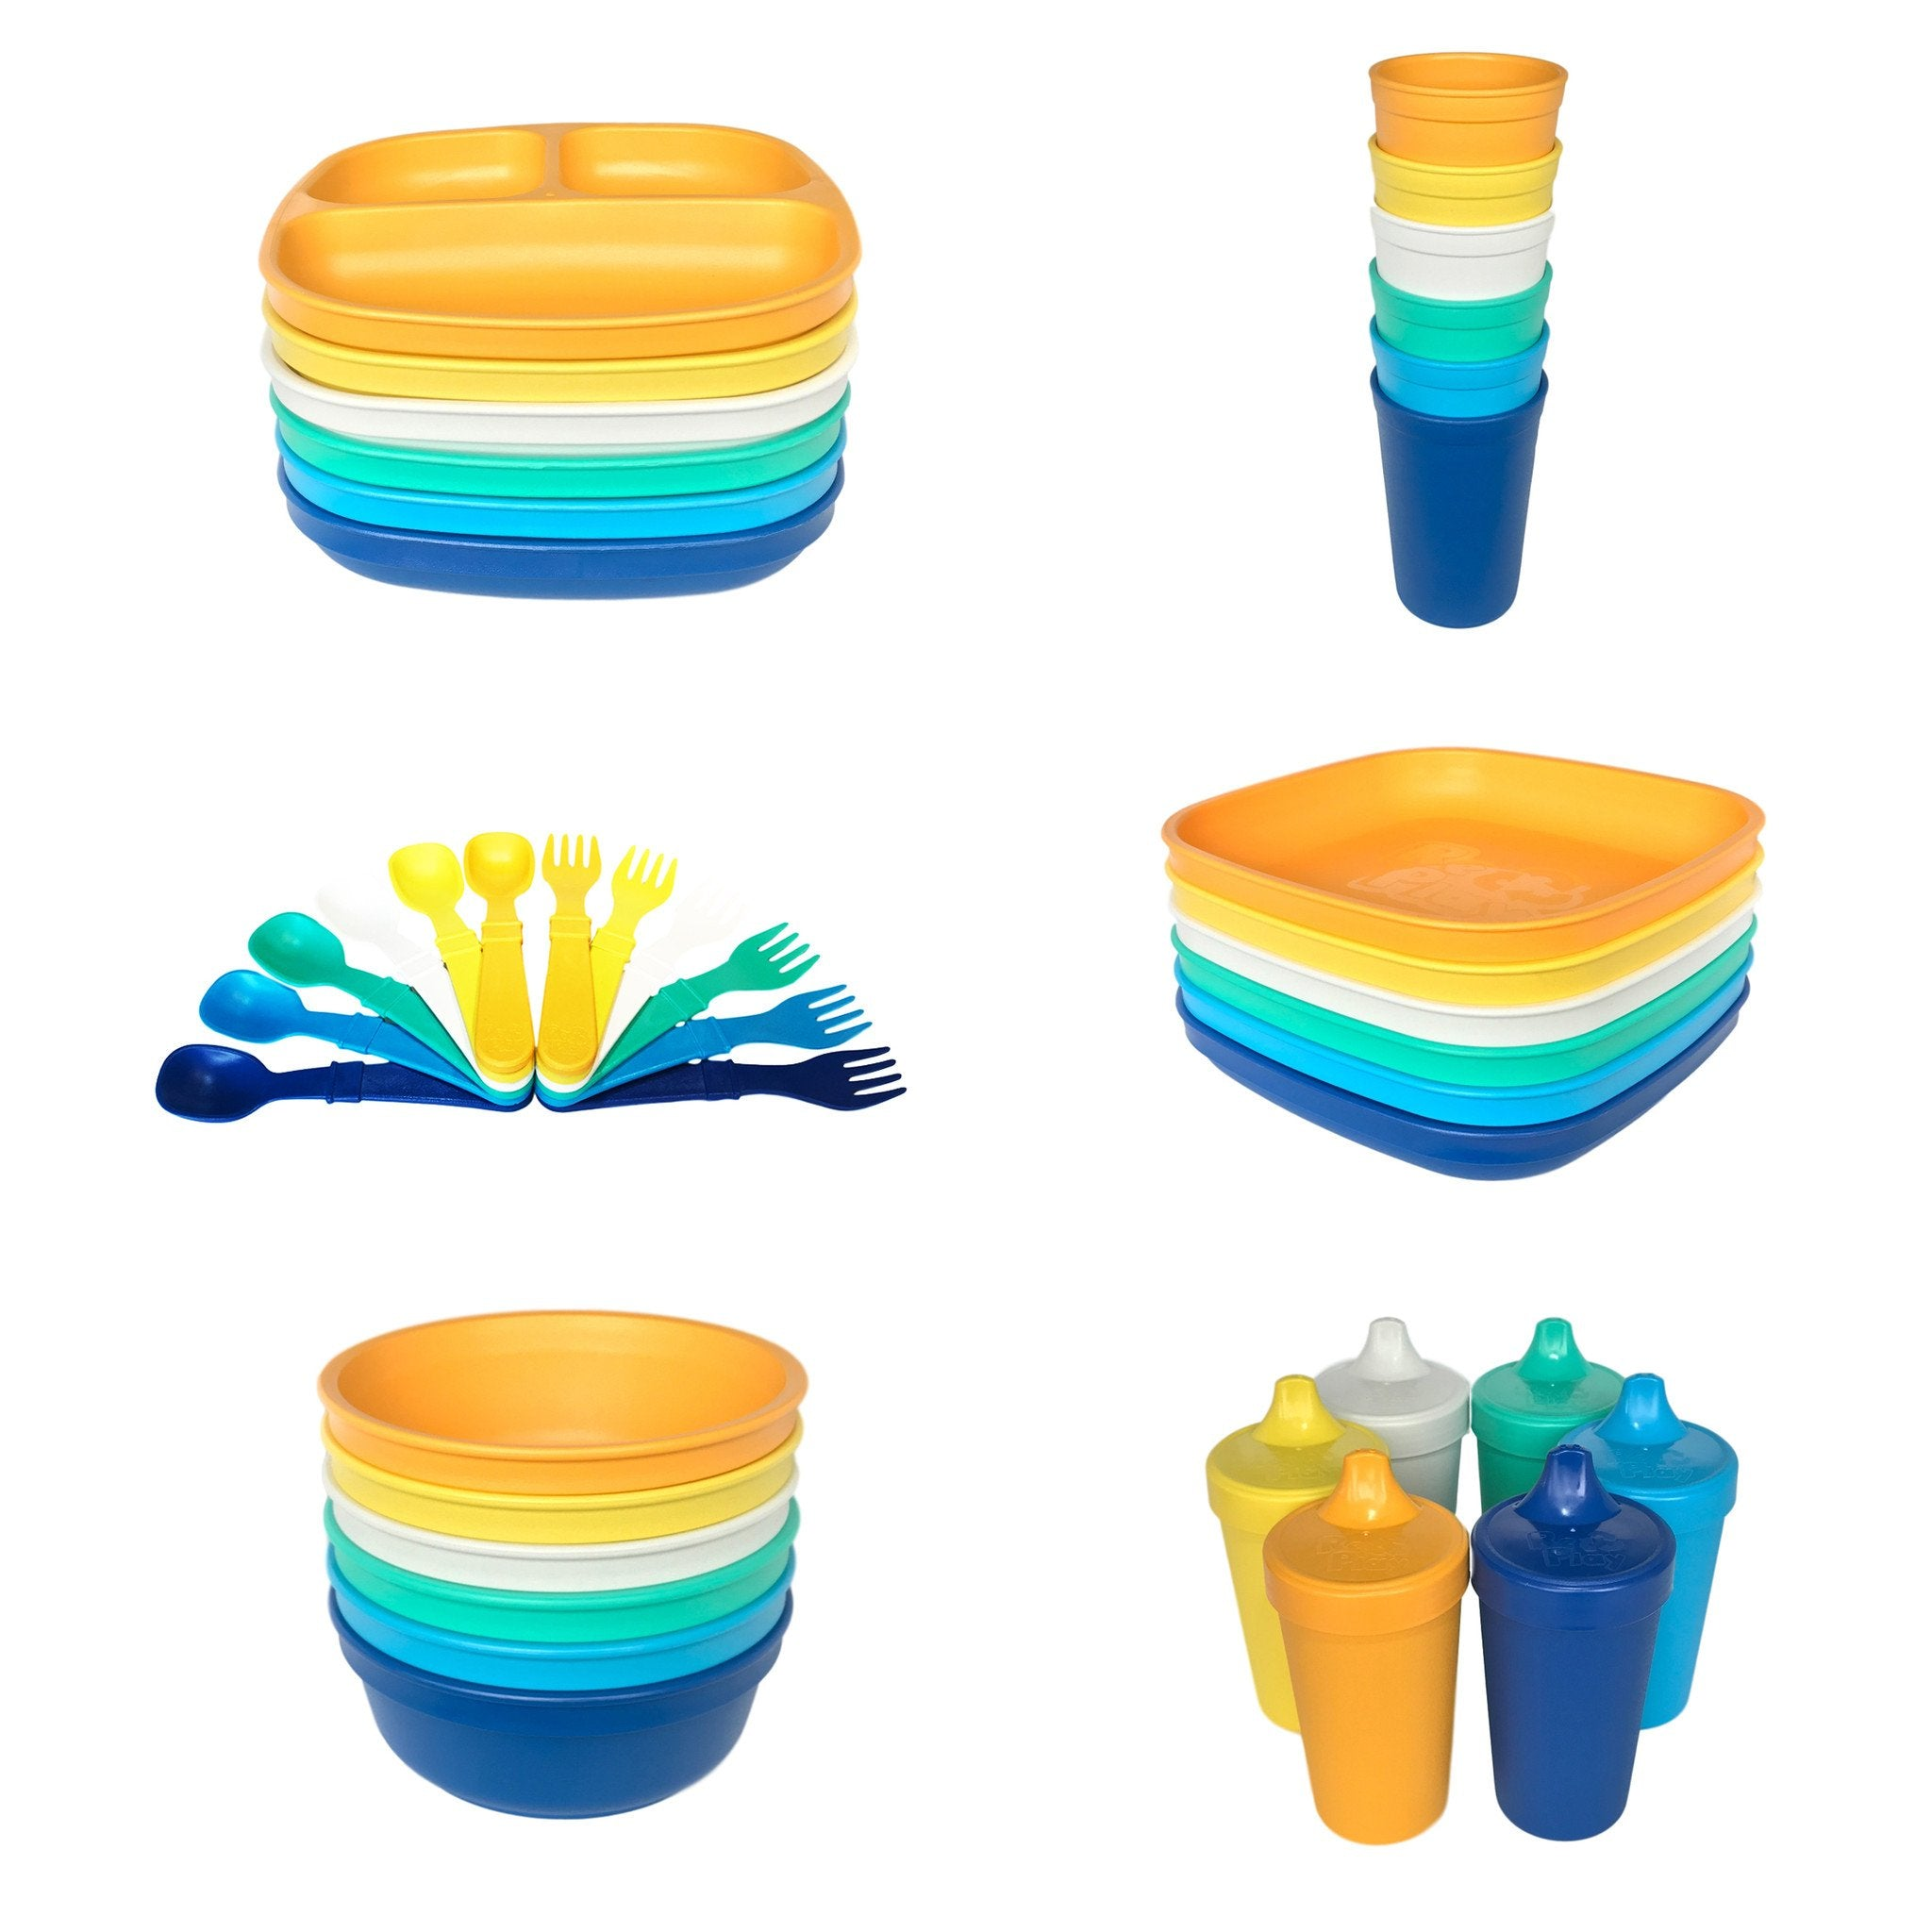 Replay 6 Piece Sets in Beach Replay Dinnerware at Little Earth Nest Eco Shop